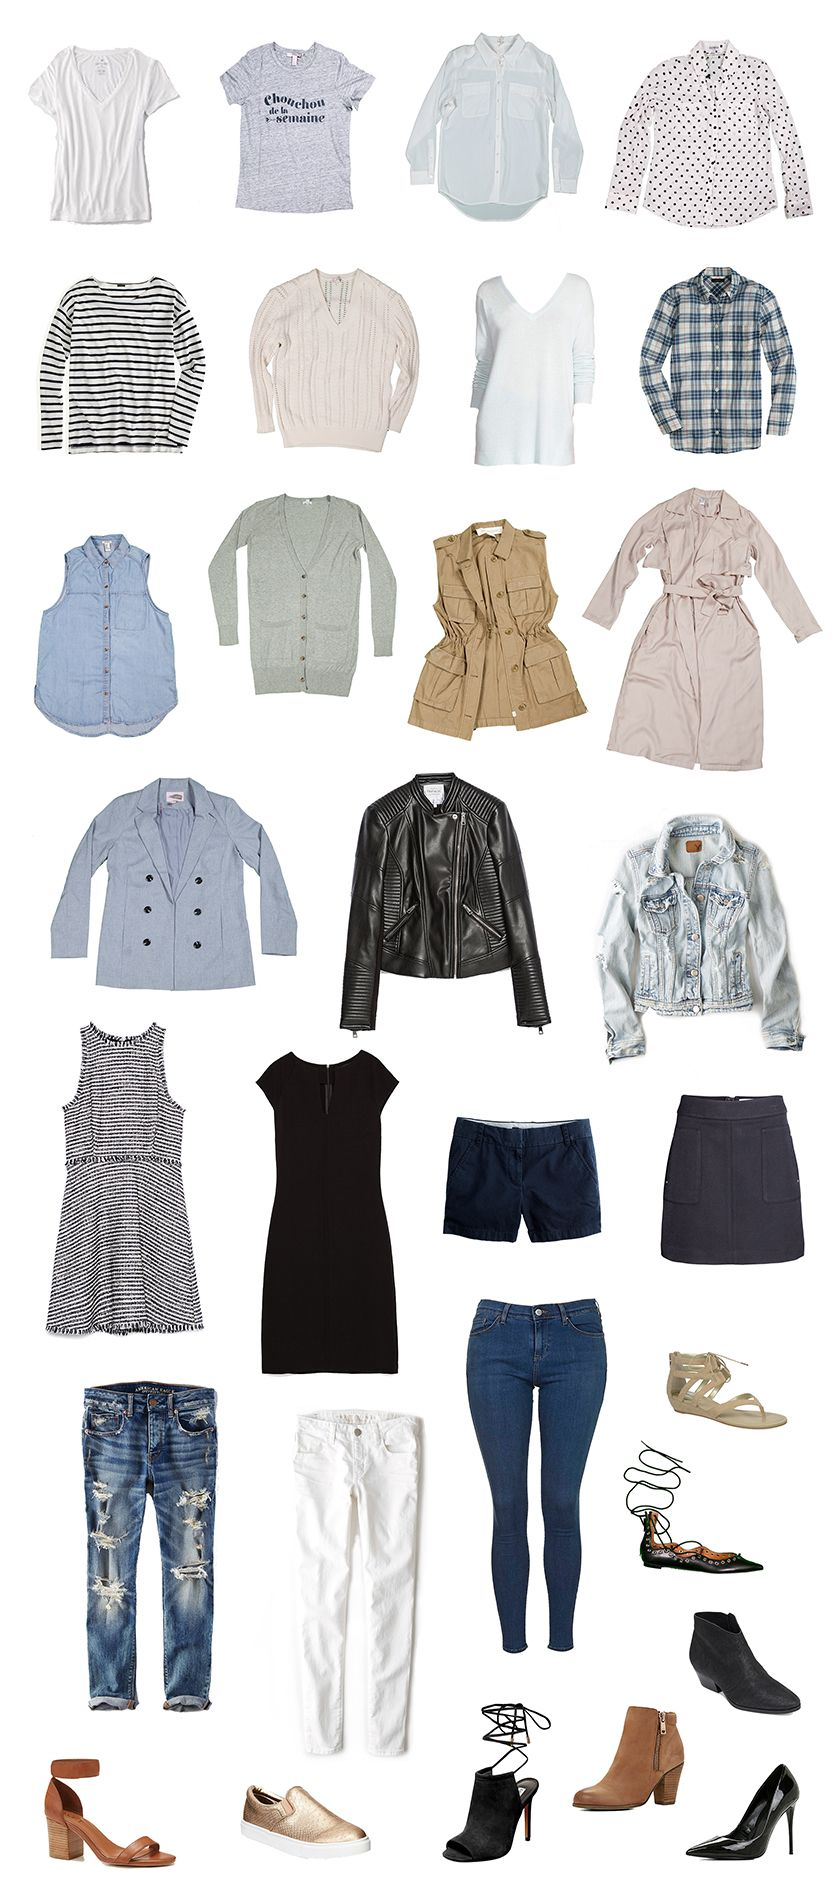 Capsule Wardrobe: Your Closet Can Simplify Your Life: The Art Of The Capsule